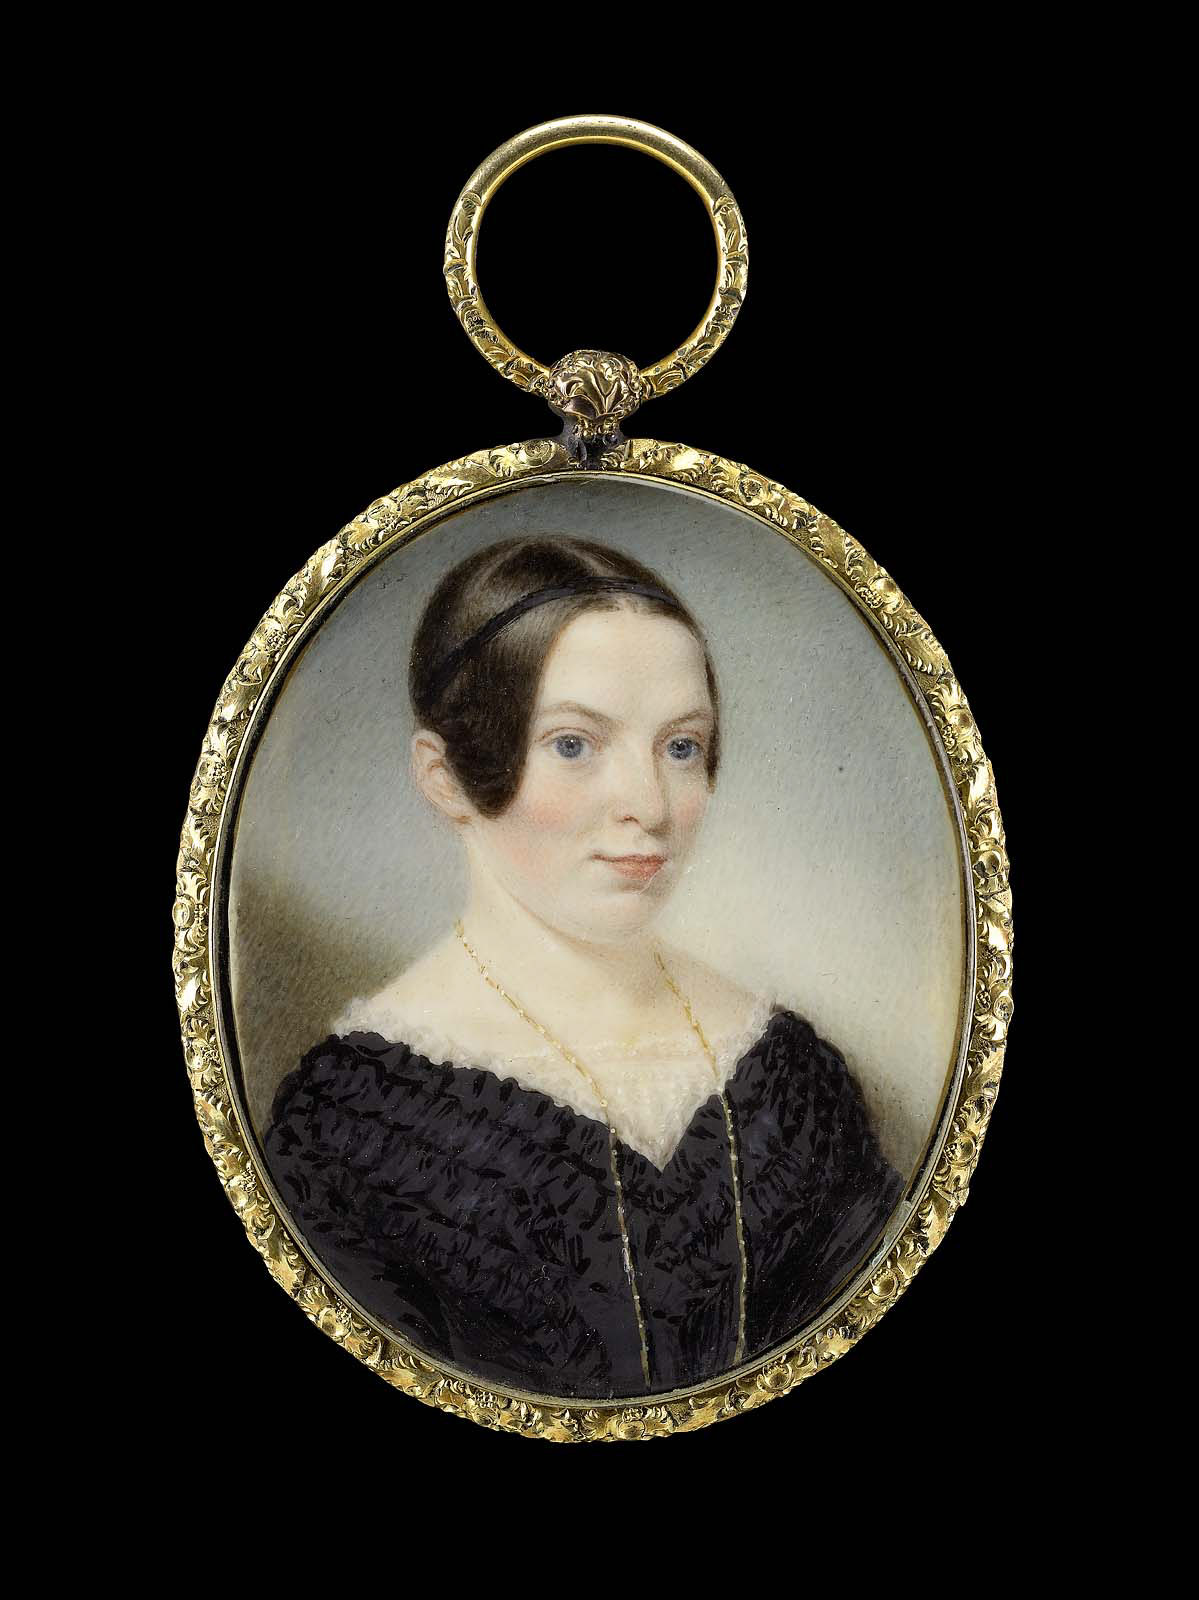 Sarah Goodridge: Retrato de Mrs. Edward Appleton. Museo de Bellas Artes de Boston.